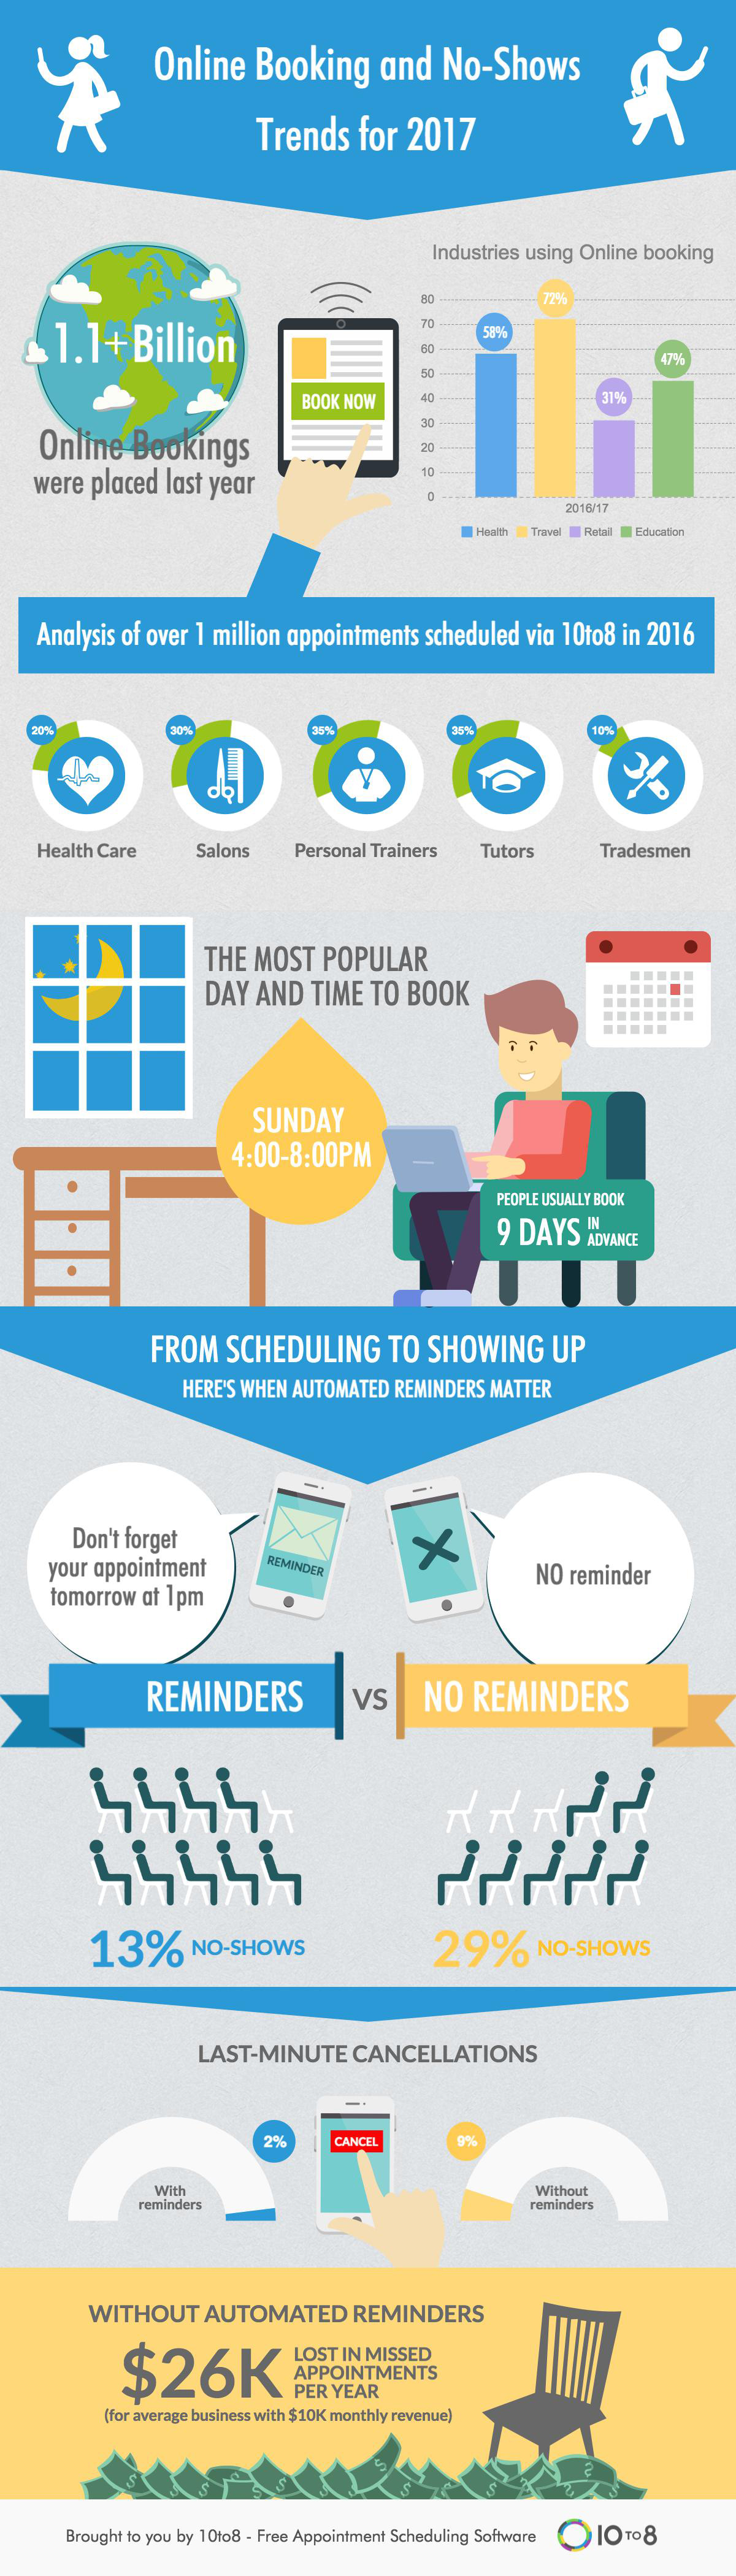 Online Booking & No- Show trends in 2017 #Infographic